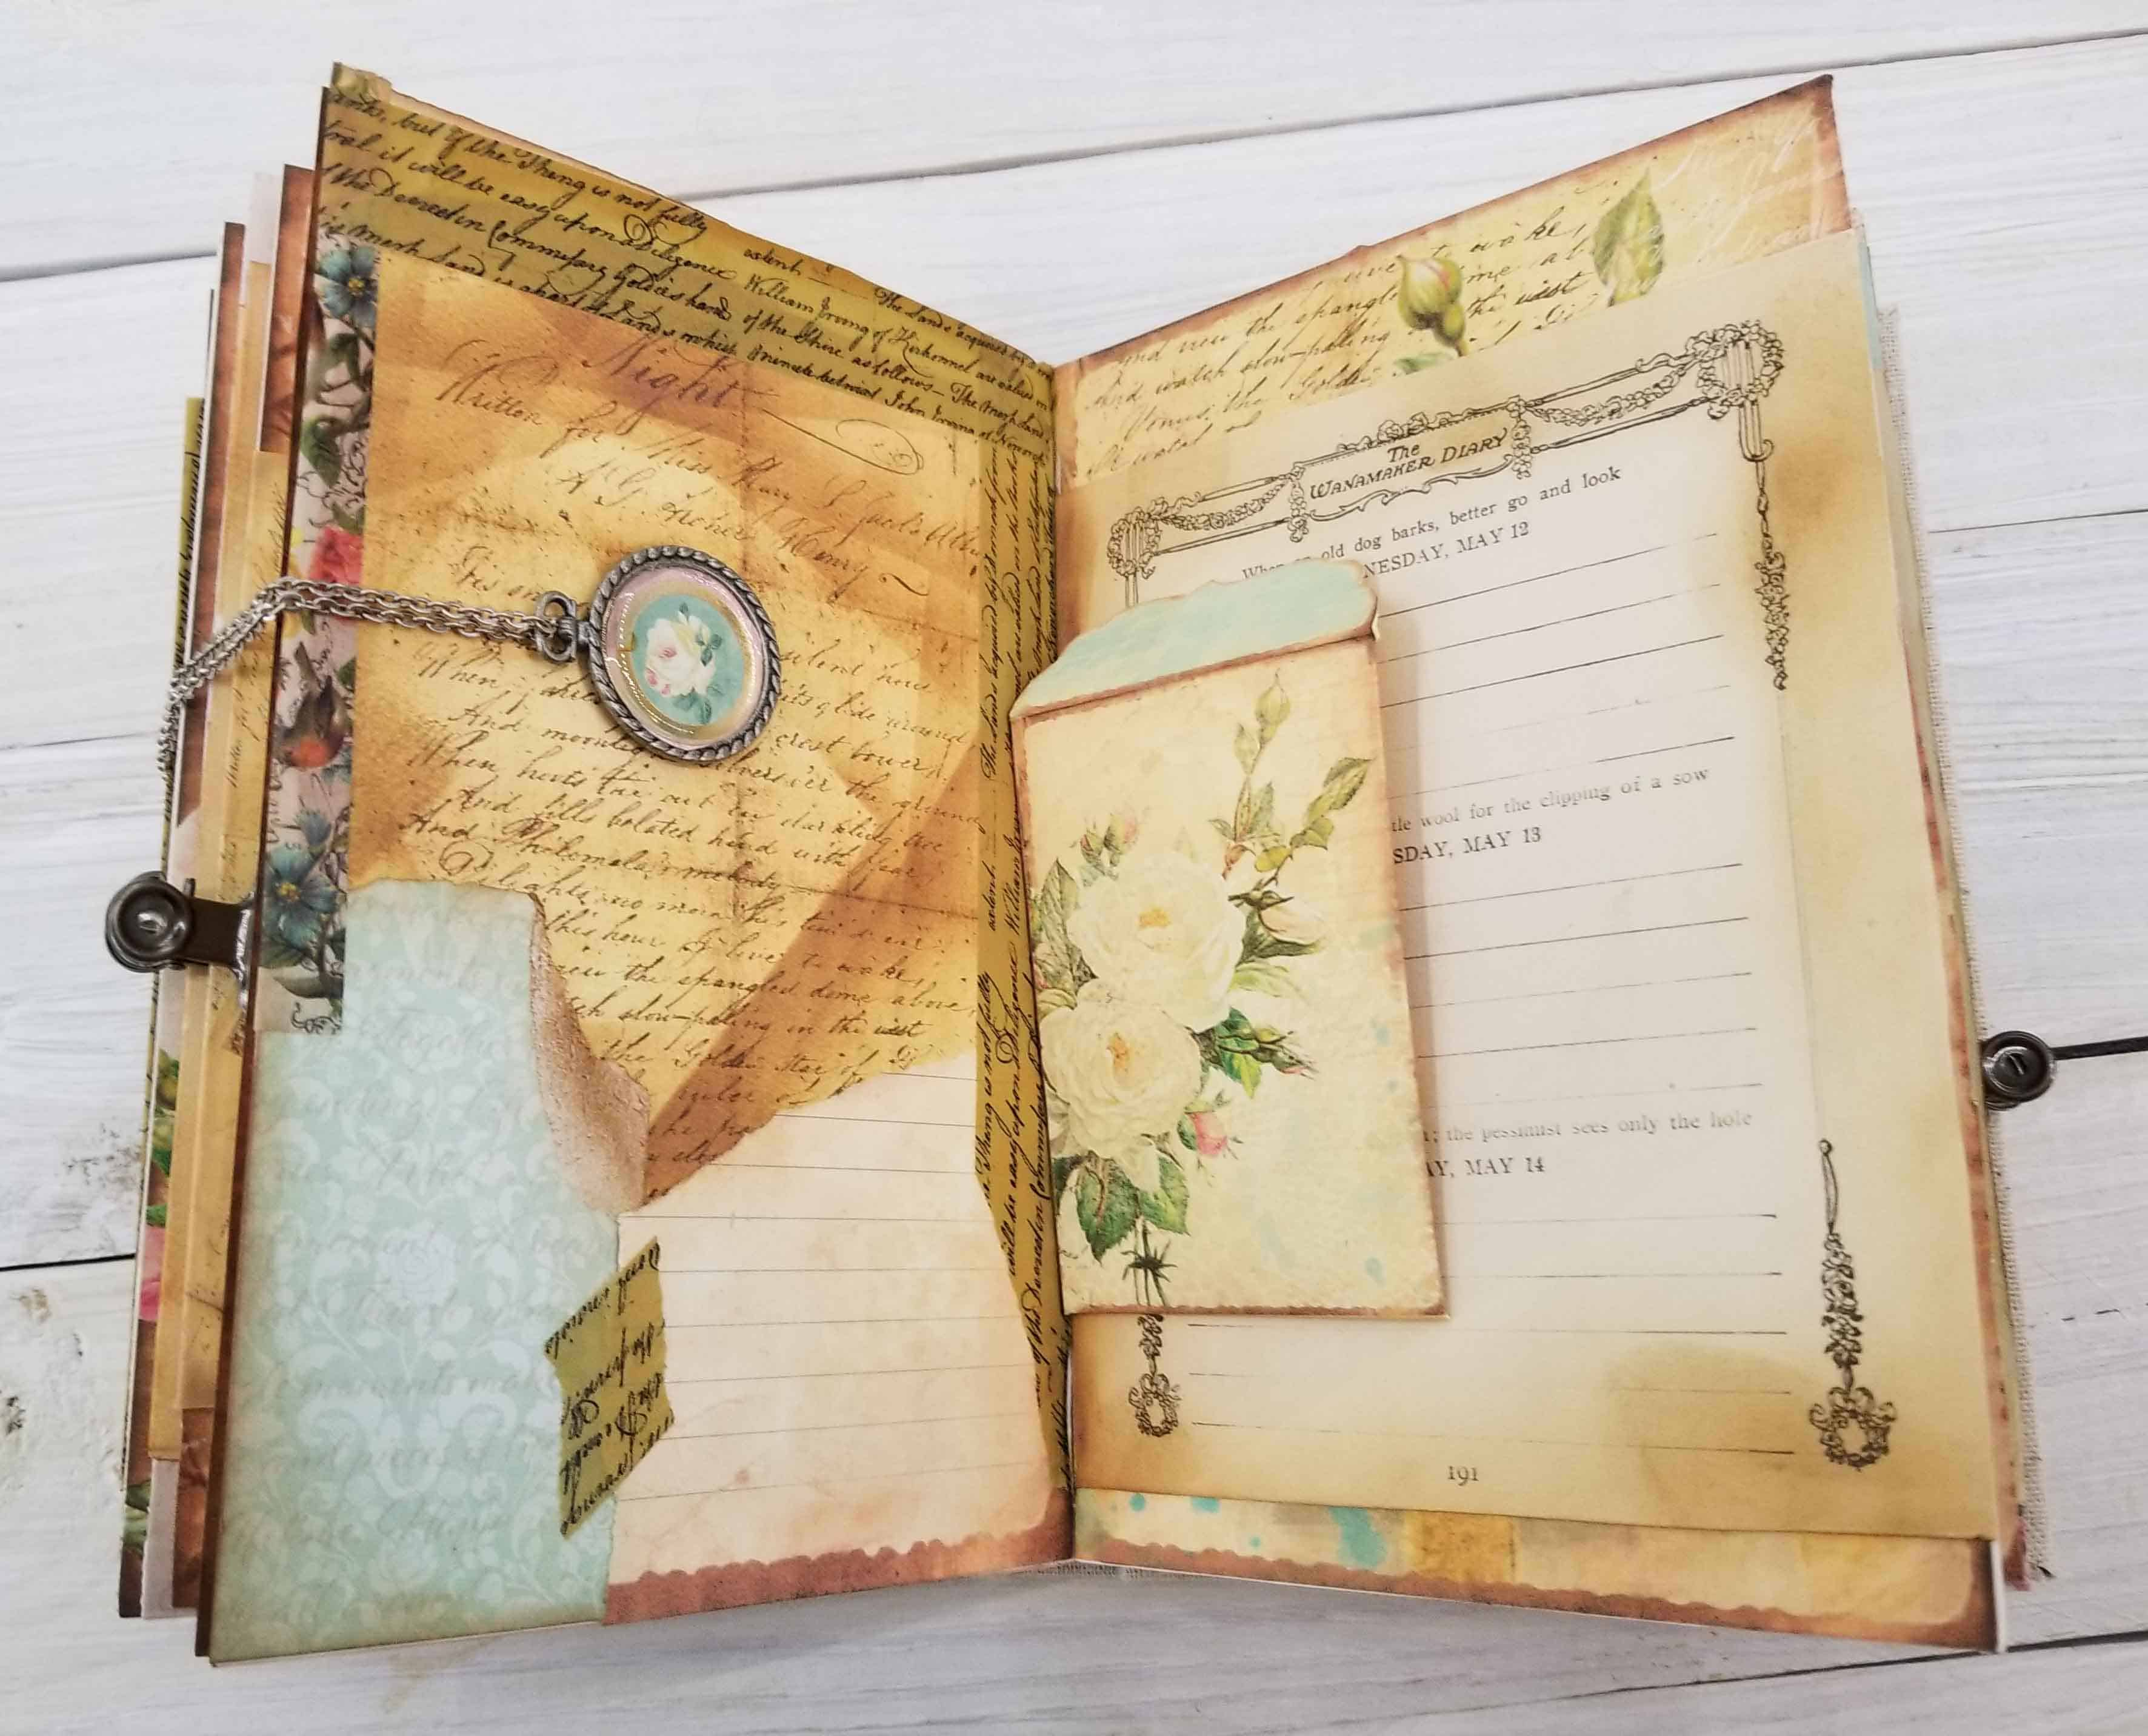 Rose Garden Diary Junk Journal Compass And Ink As shiori reads through the pages. rose garden diary junk journal